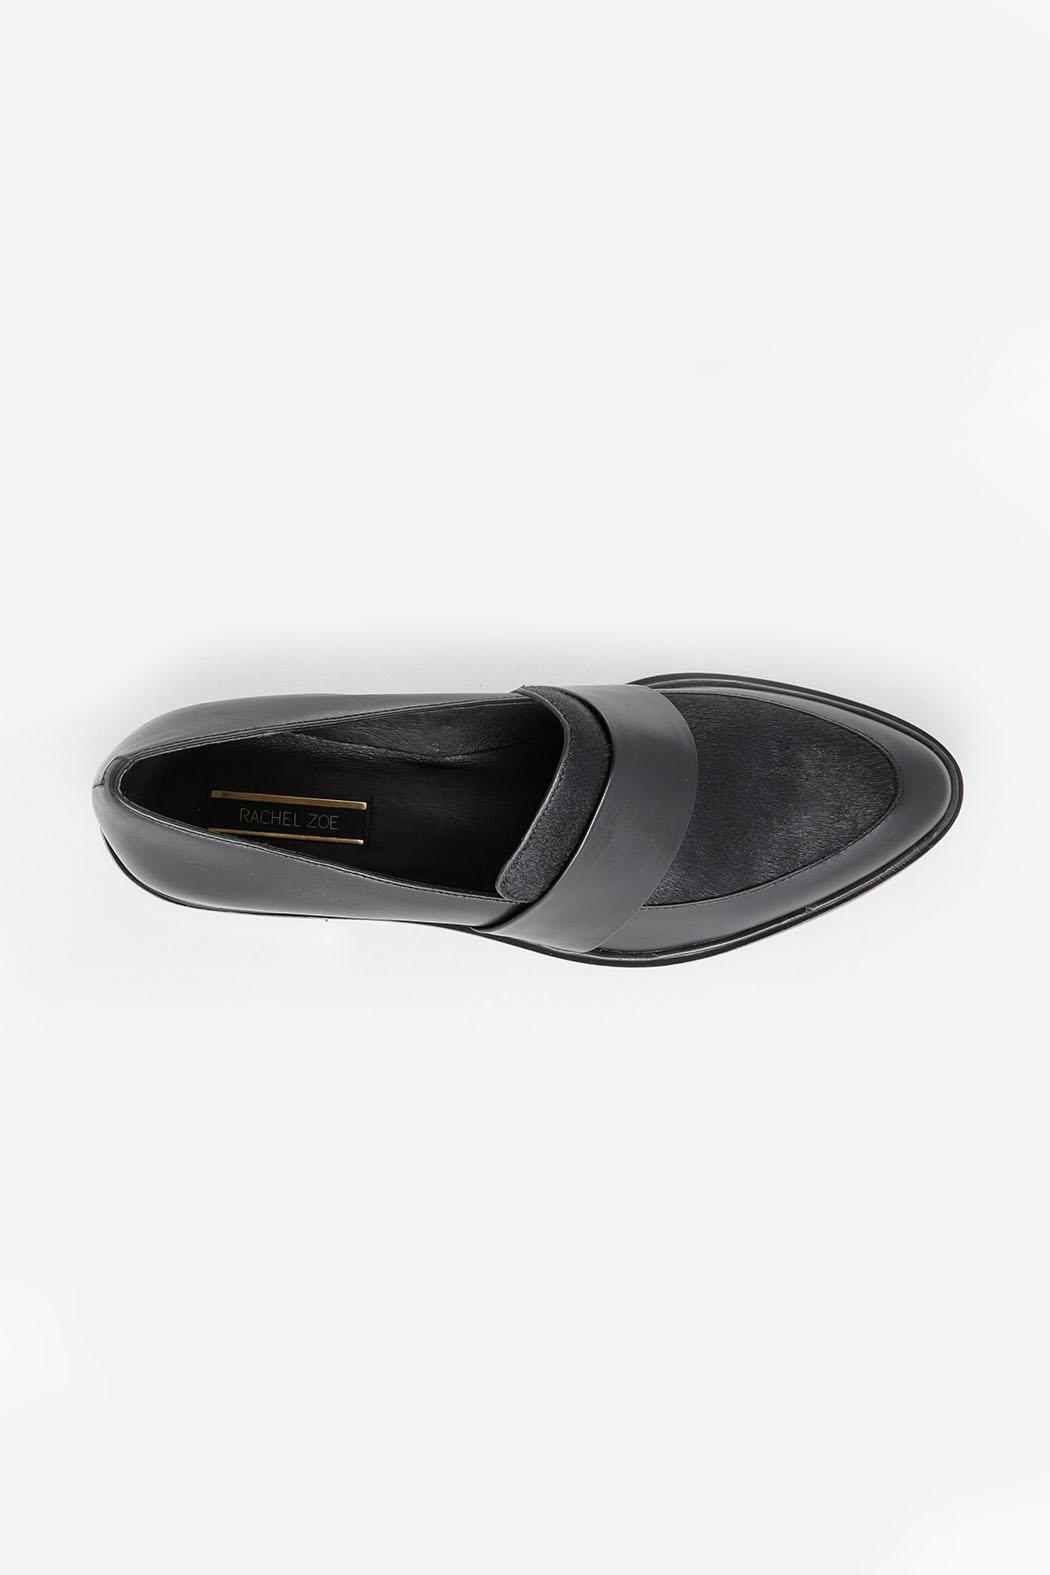 Rachel Zoe Bianca Calf Loafers - Back Cropped Image